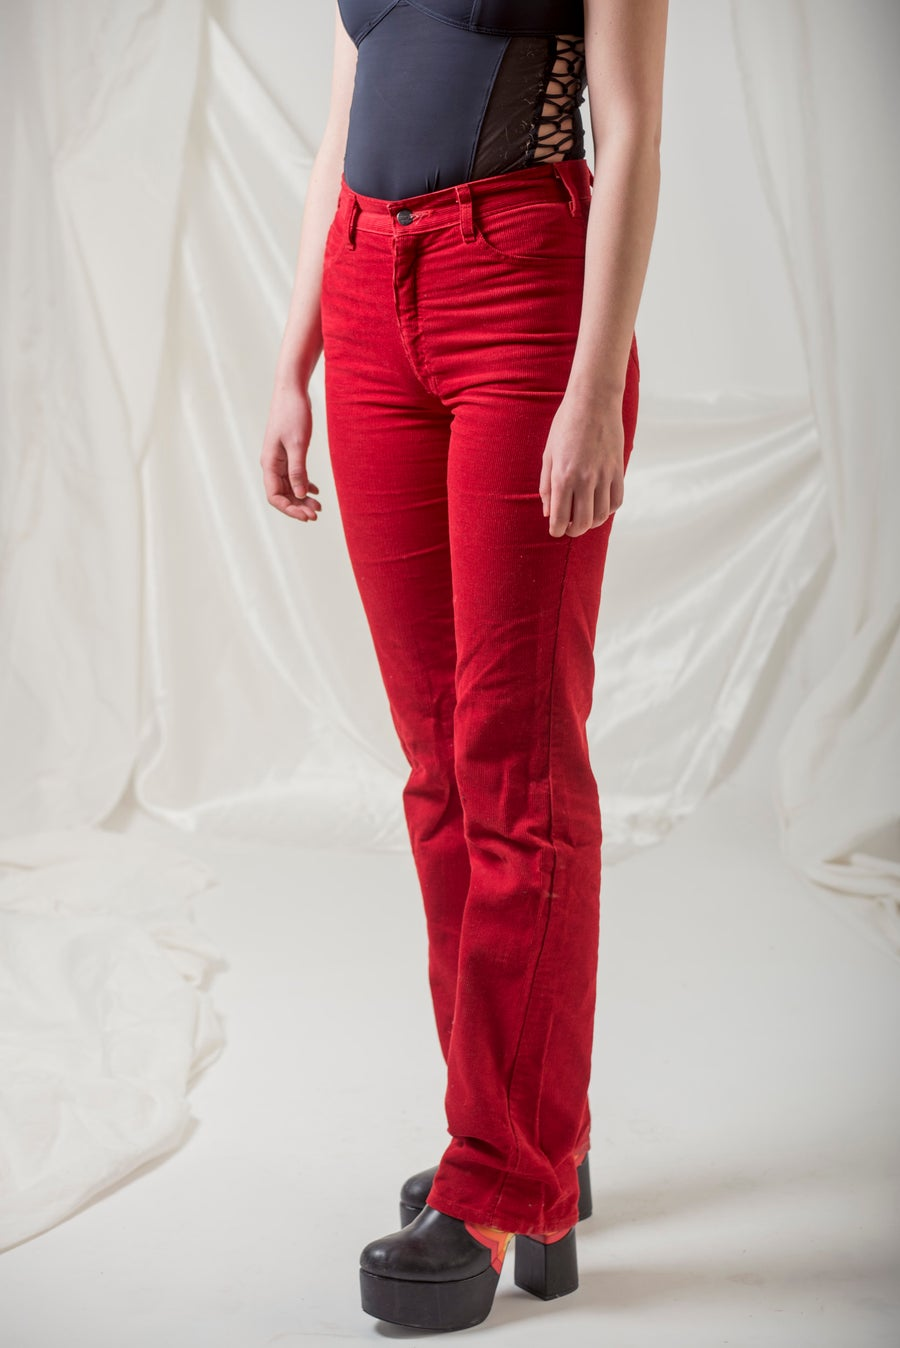 Image of Red Corduroy Flared 'Paddocks' 1970s Jeans